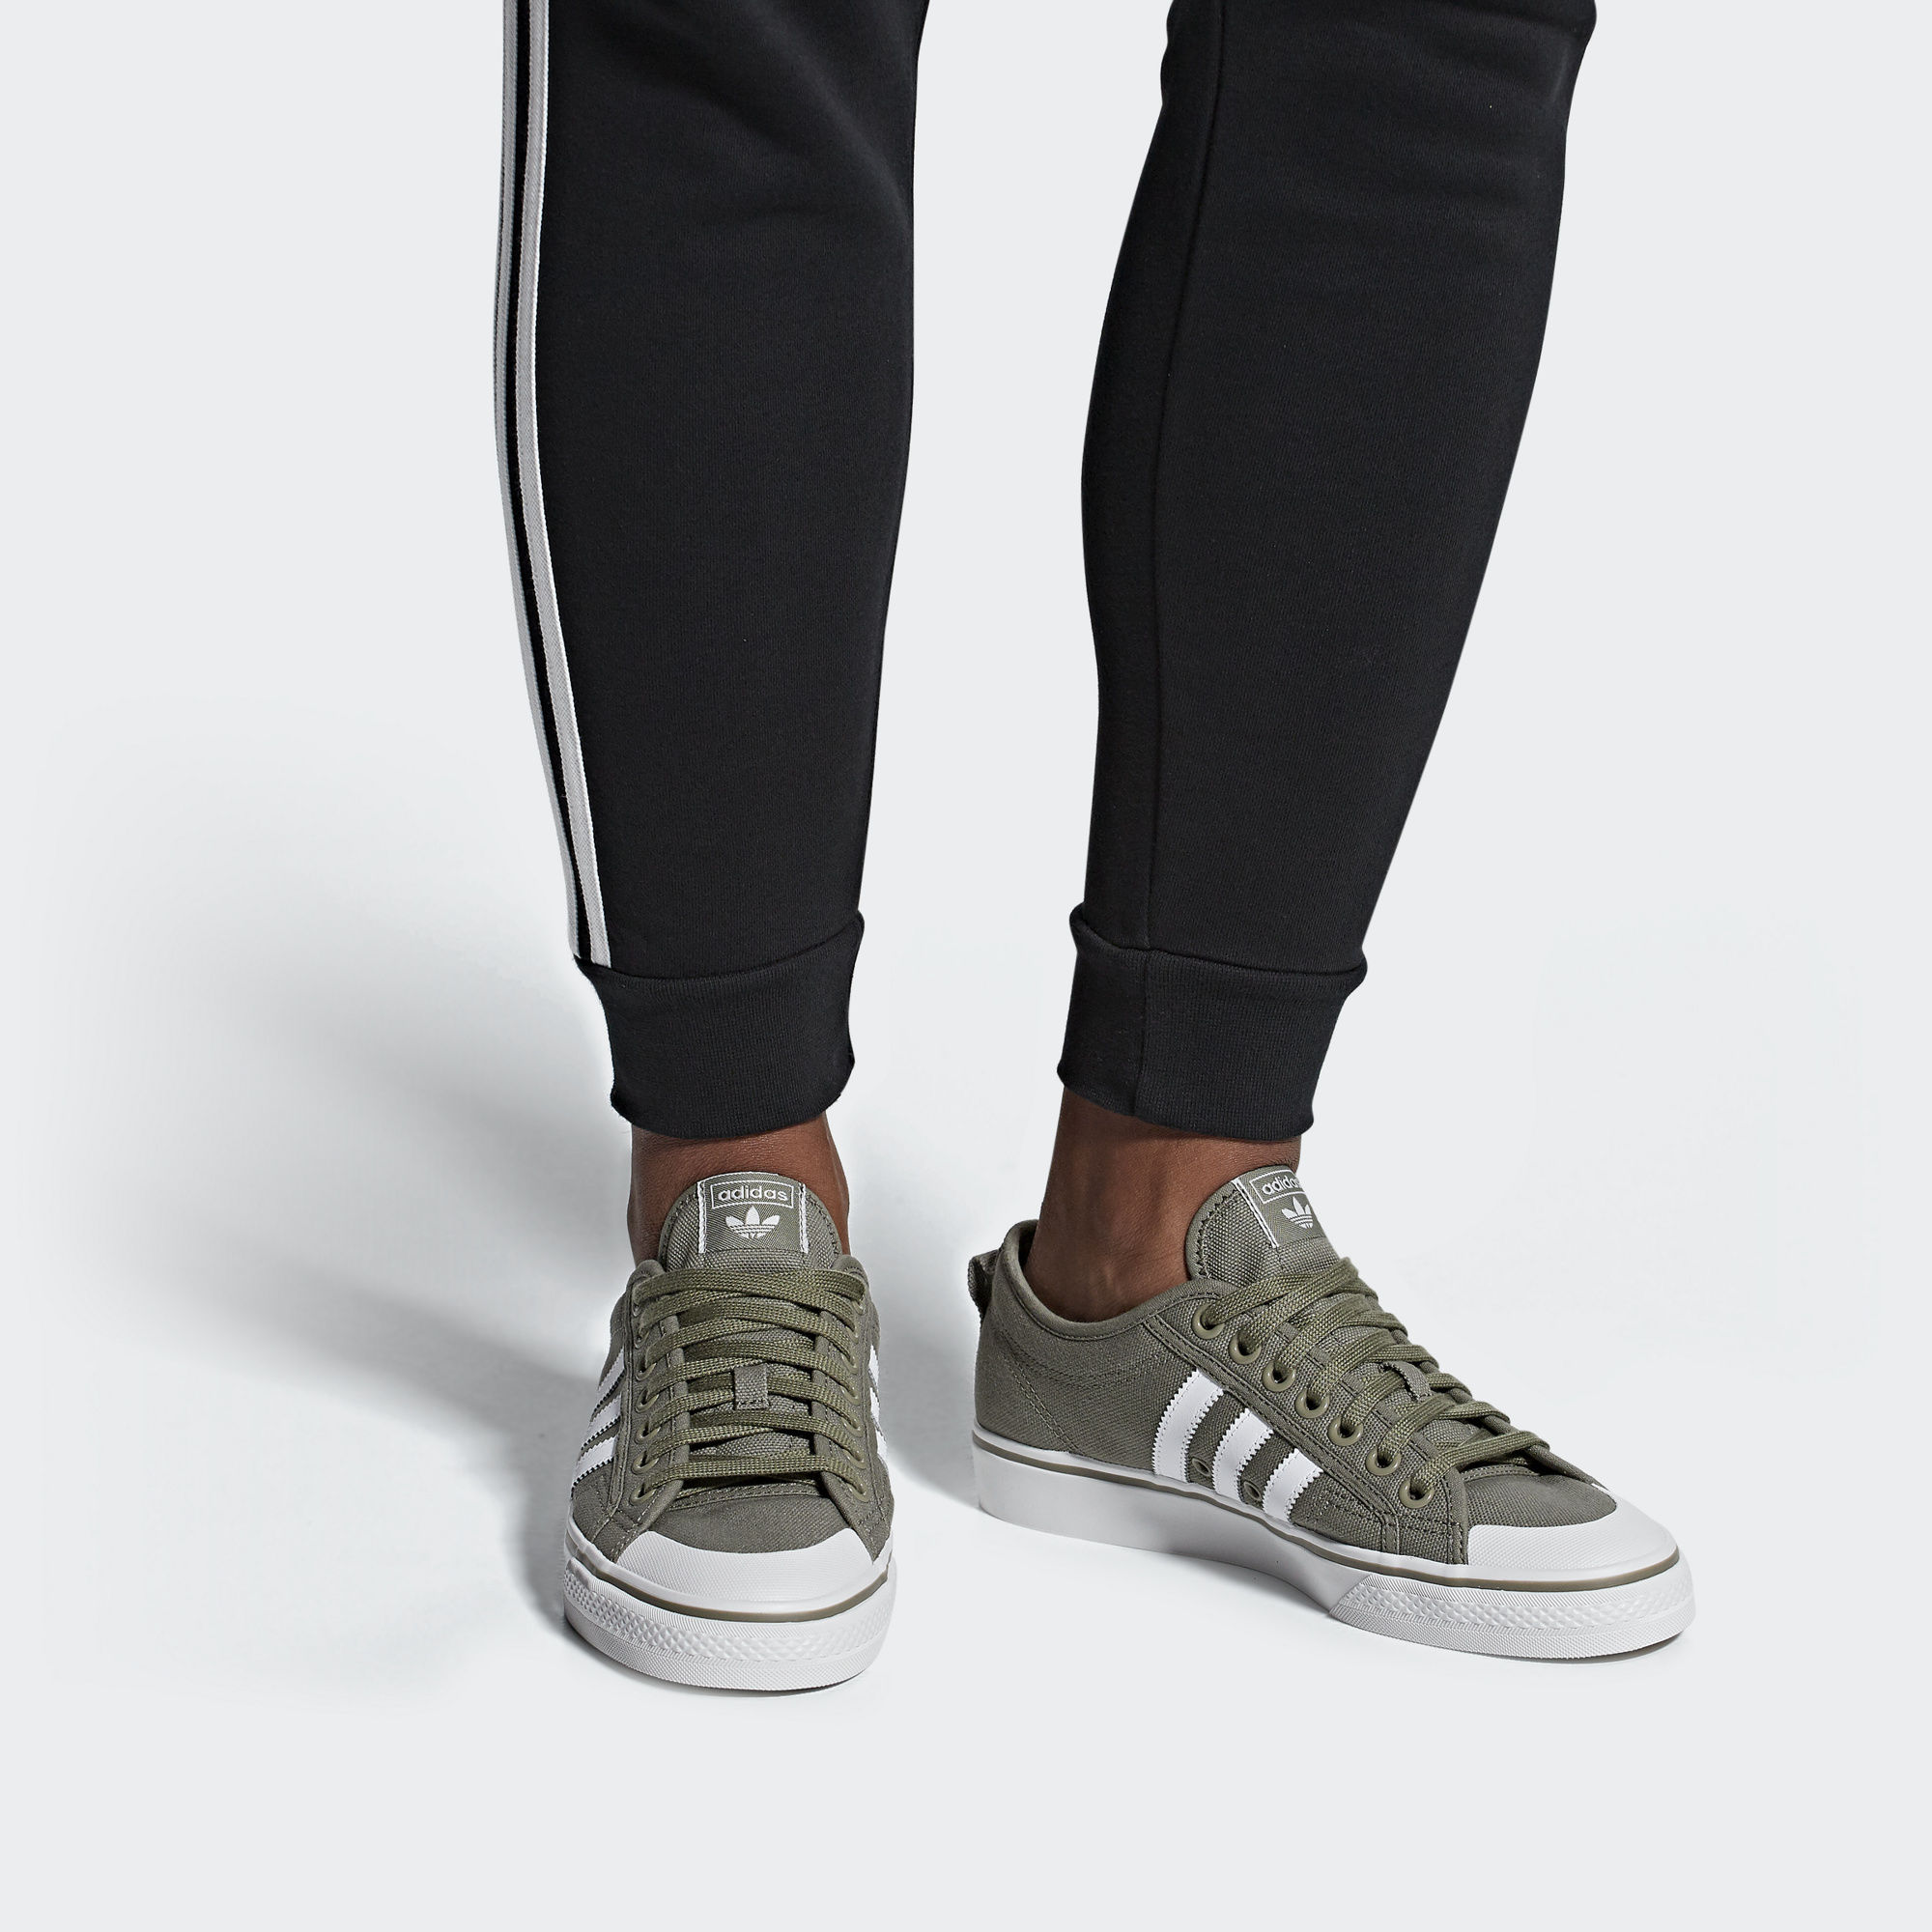 aae63938 Кроссовки Nizza CM8572 adidas Originals - Украина | ONETEAM.COM.UA